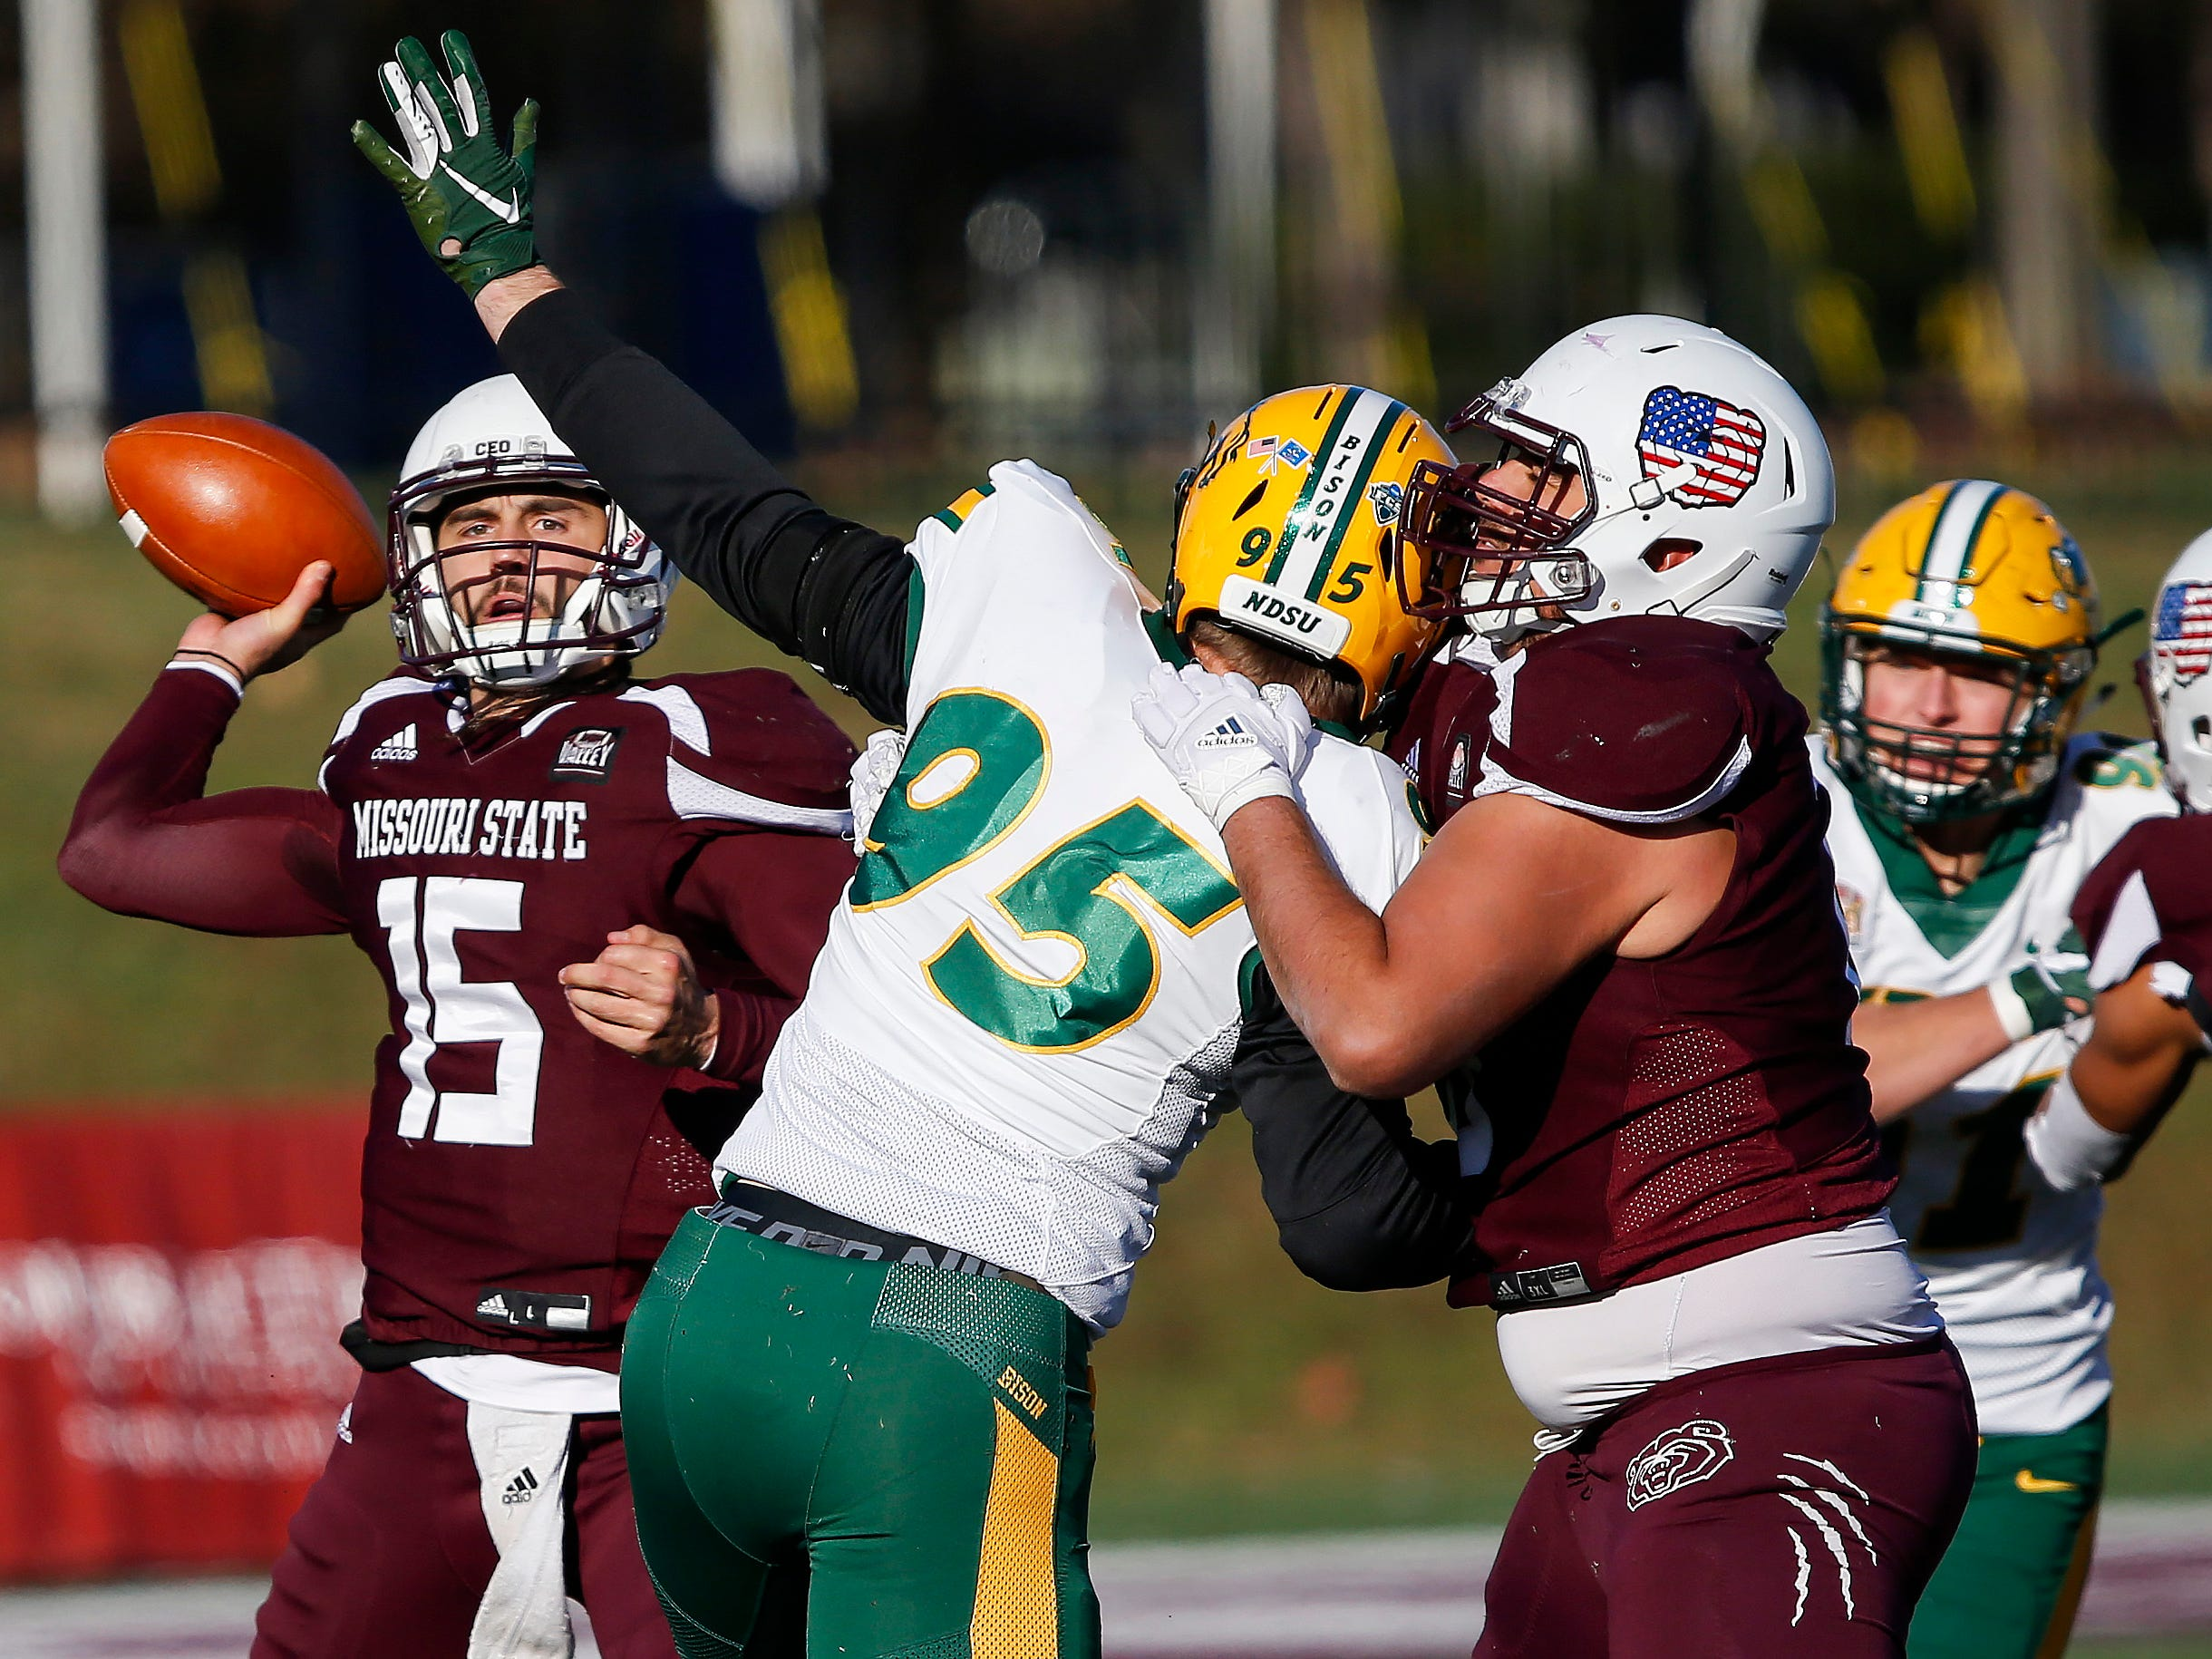 Missouri State University's Peyton Huslig passes the ball in the Bear's last home game of the season against North Dakota State at Plaster Stadium on Saturday, Nov. 10, 2018.